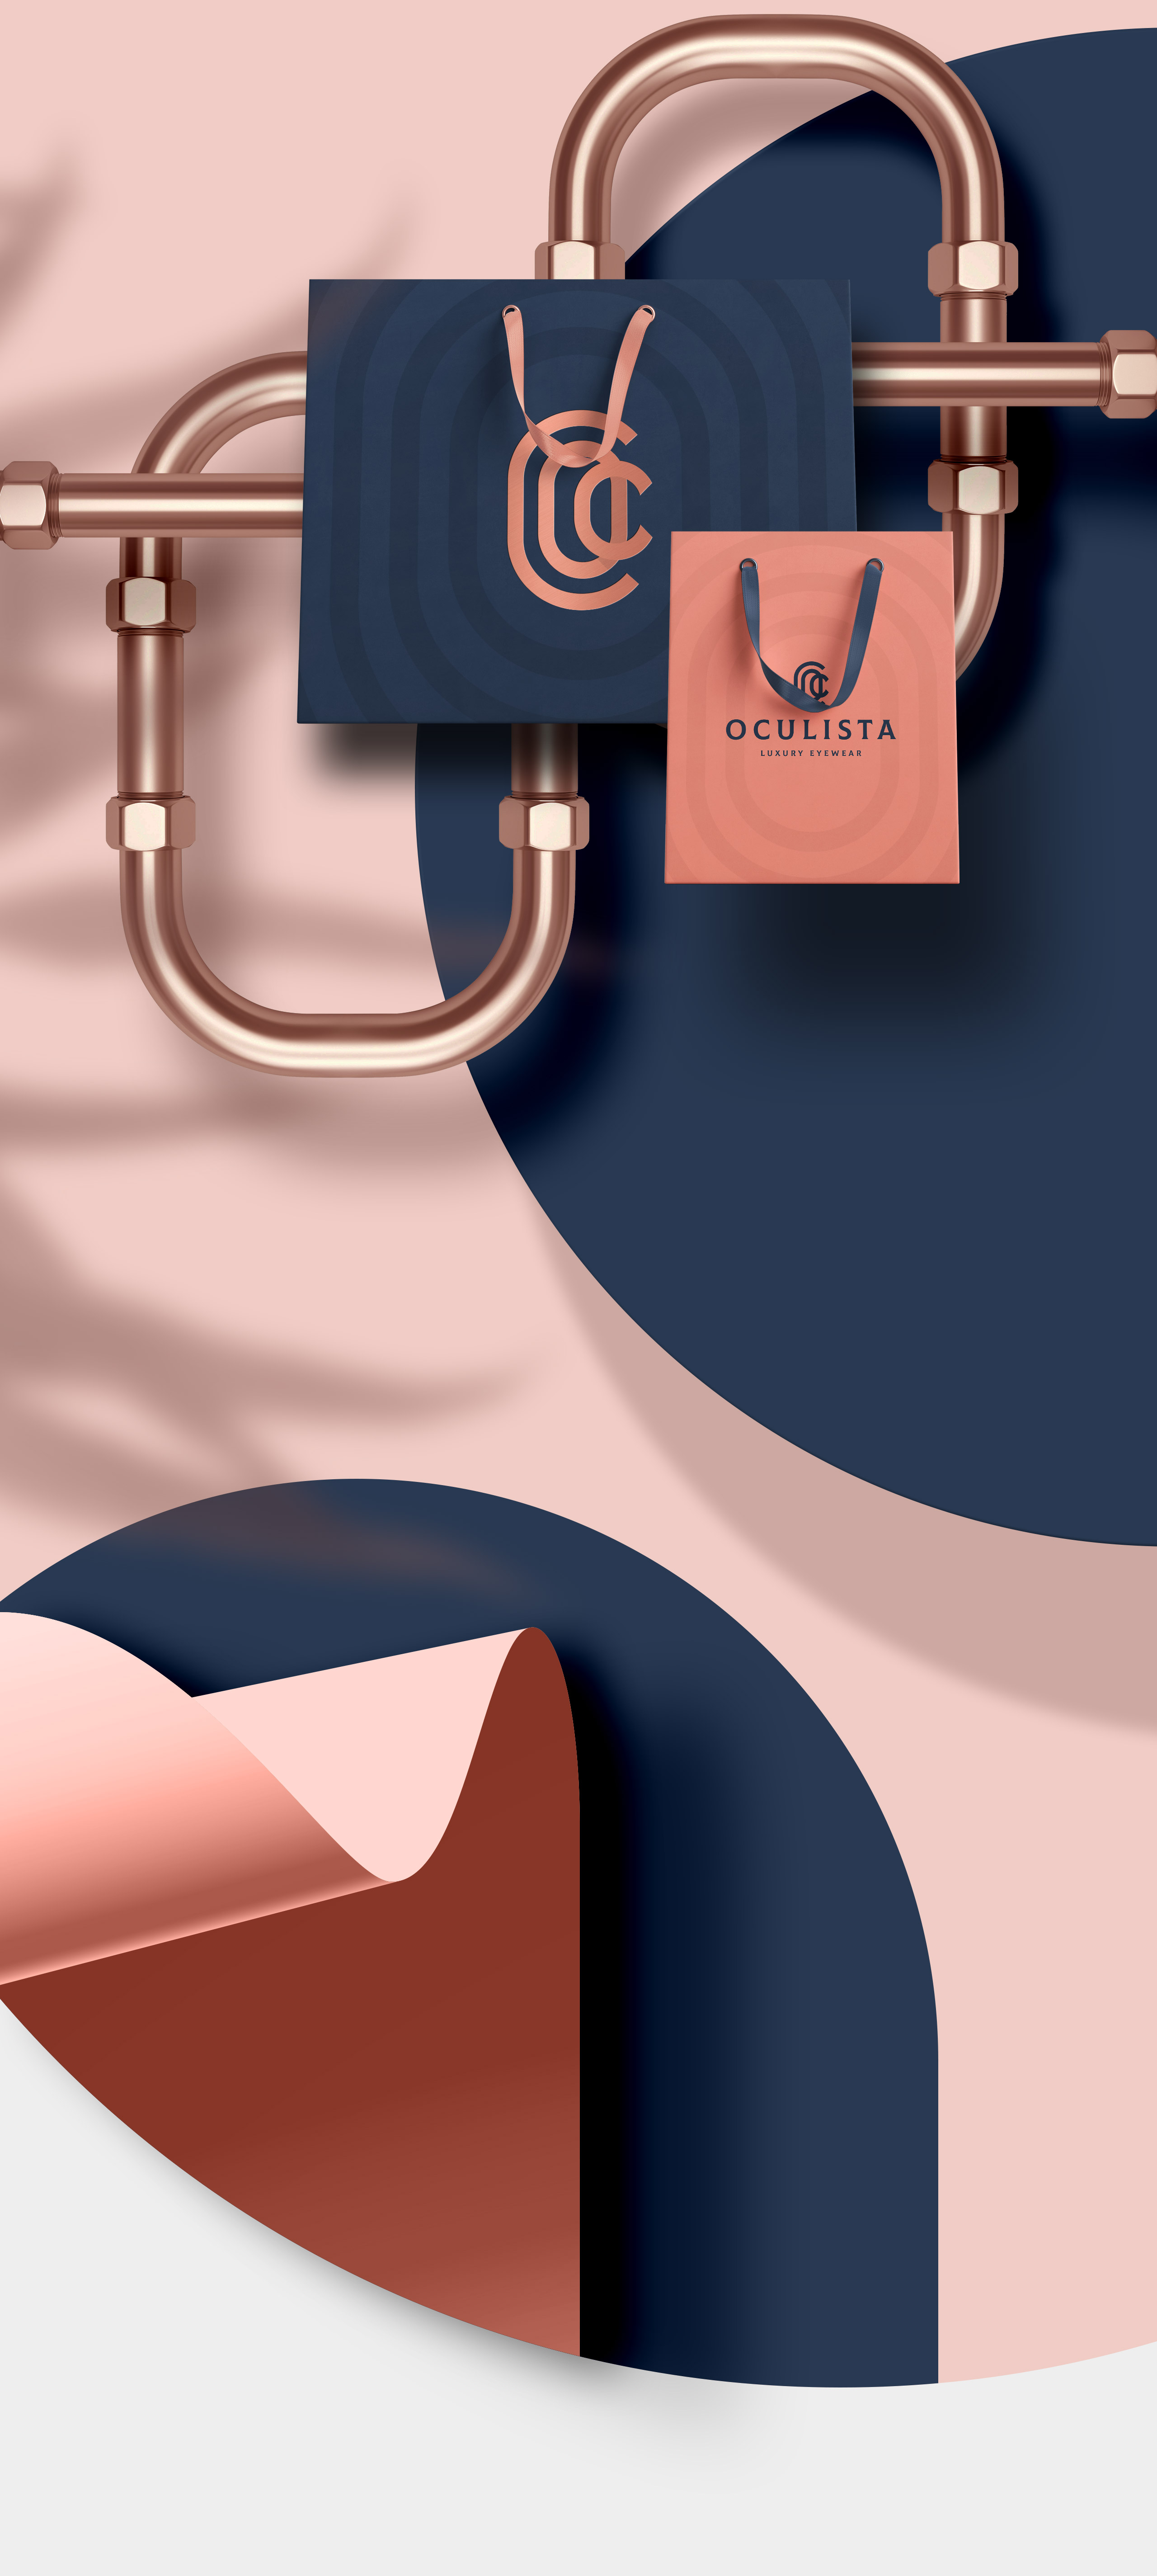 Oculista Luxury Eyewear - Branding by erva